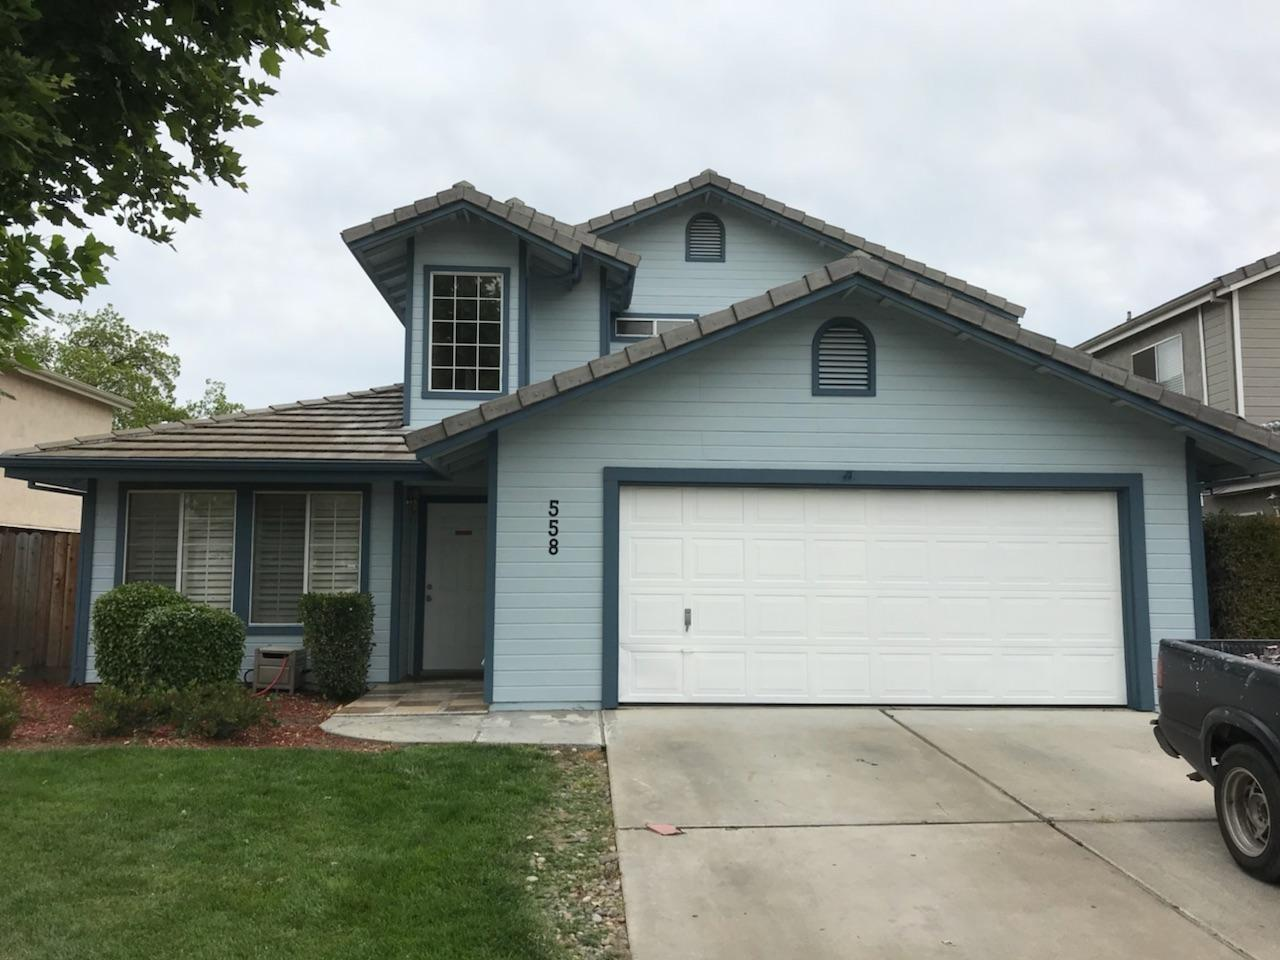 Image for 558 W 4Th Street, <br>Tracy 95376